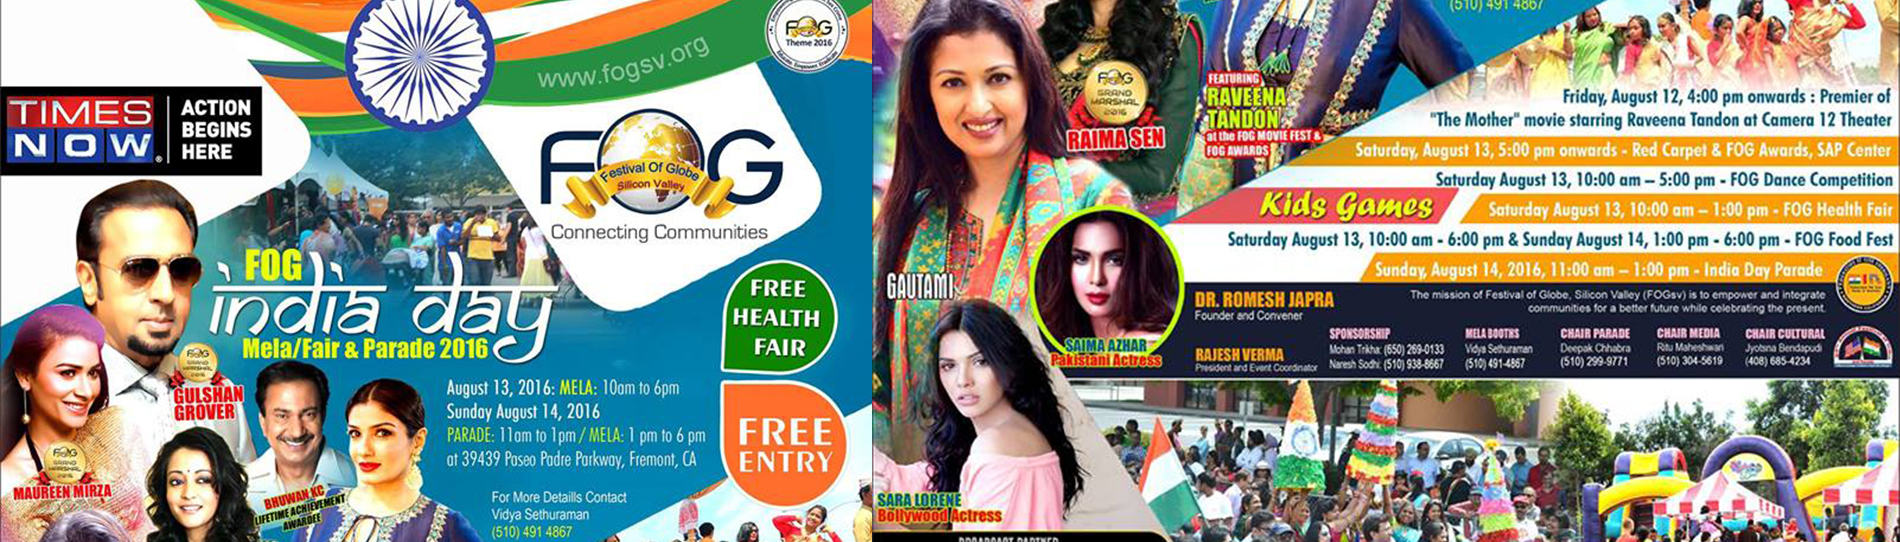 FOG India Day Fair and Grand Parade - FREE entry